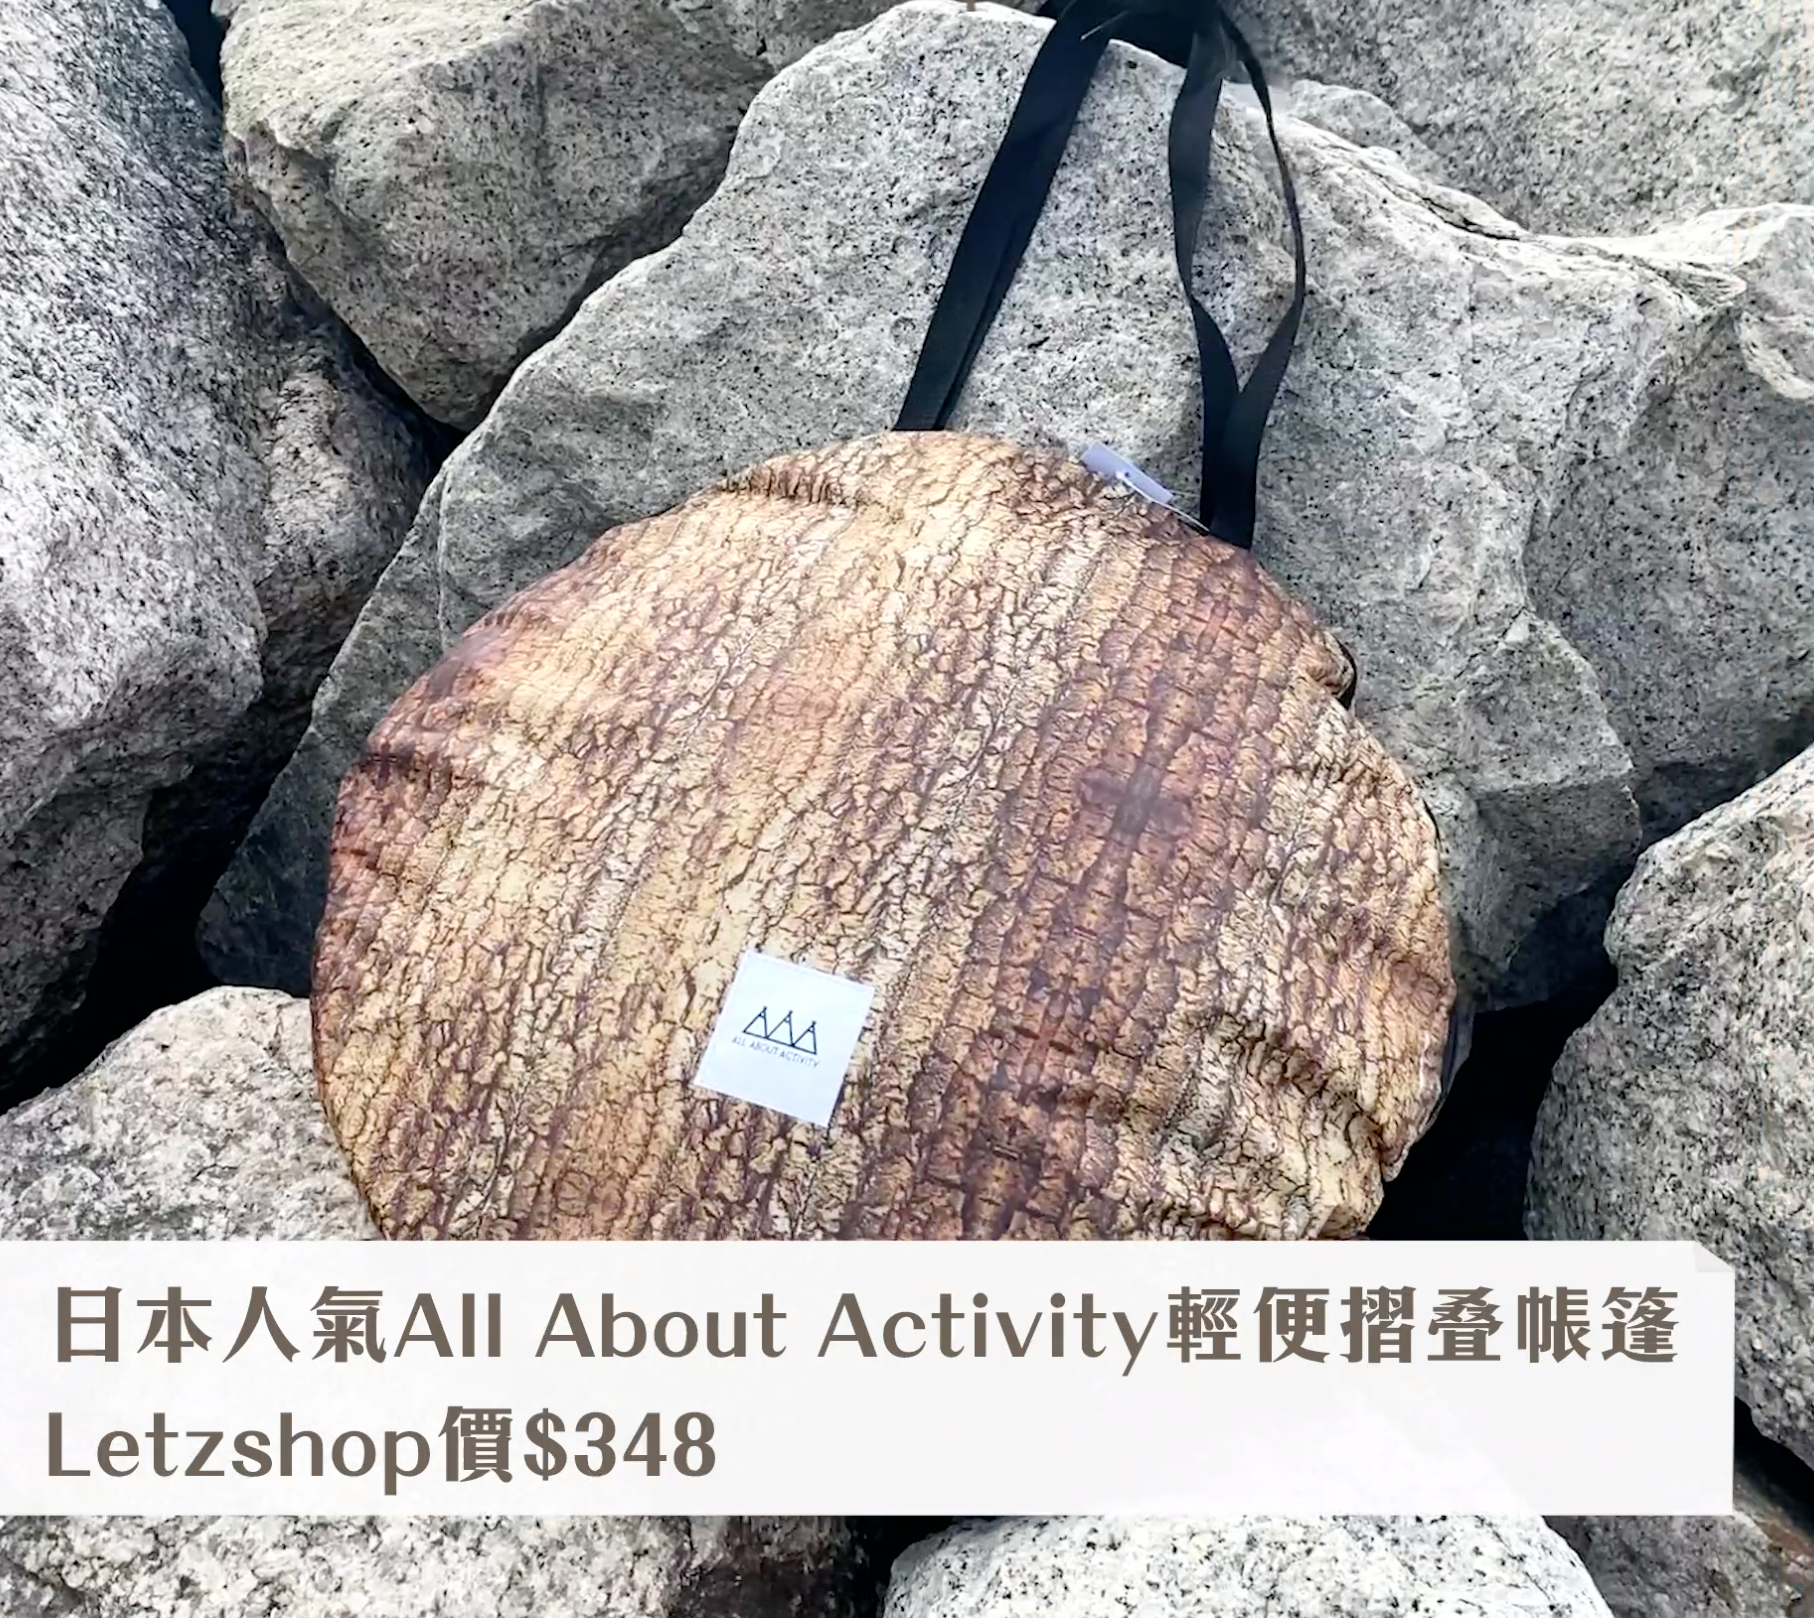 All About Activity 輕便摺疊帳篷